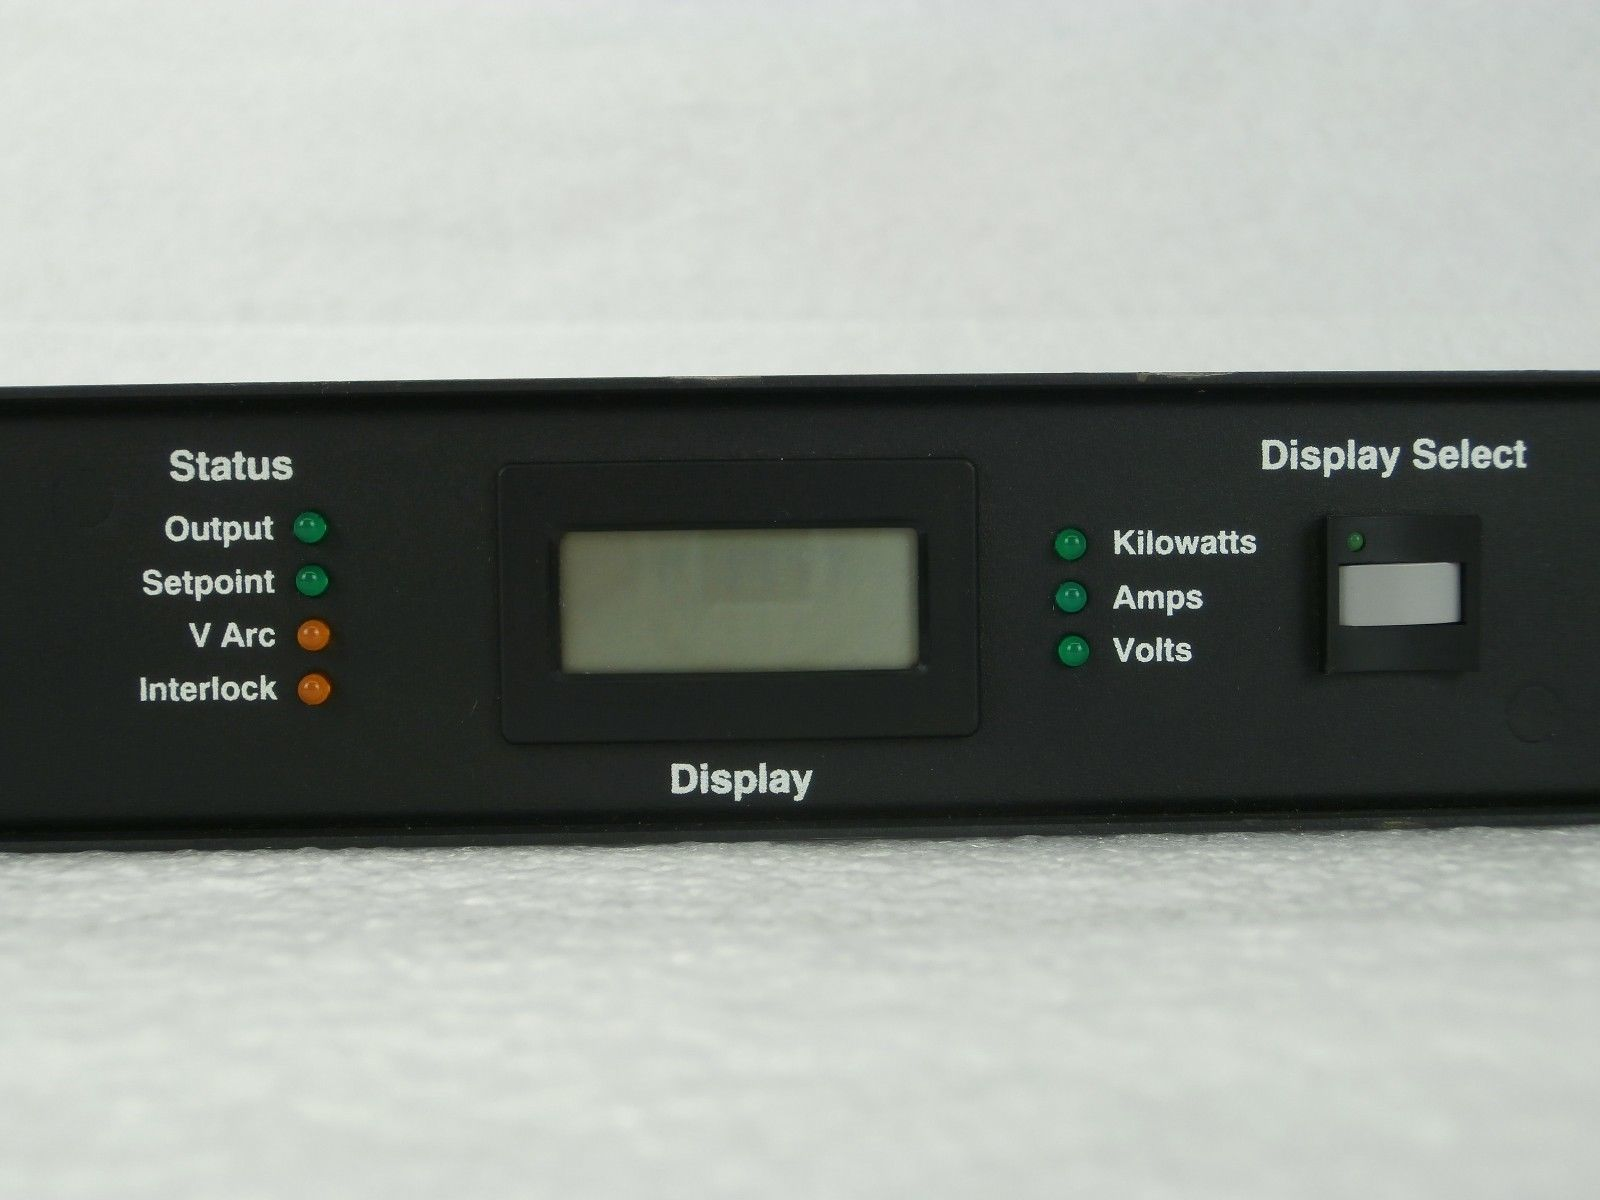 MDX-L AE Advanced Energy 3152334-000 B Interface Monitor Display Panel Used